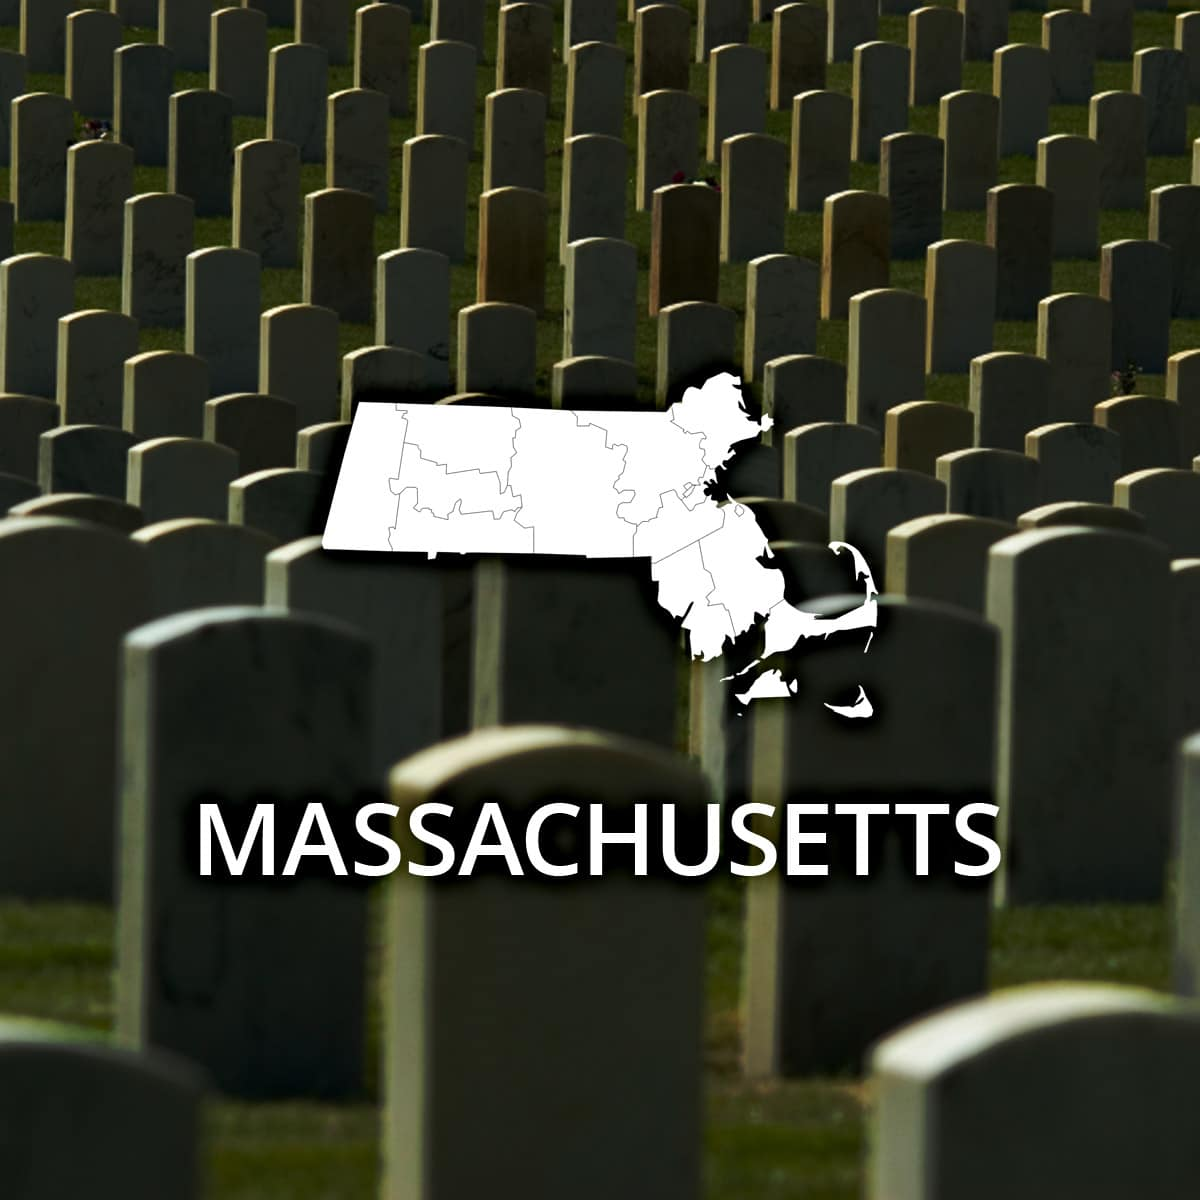 Where to Obtain a Massachusetts Death Certificate